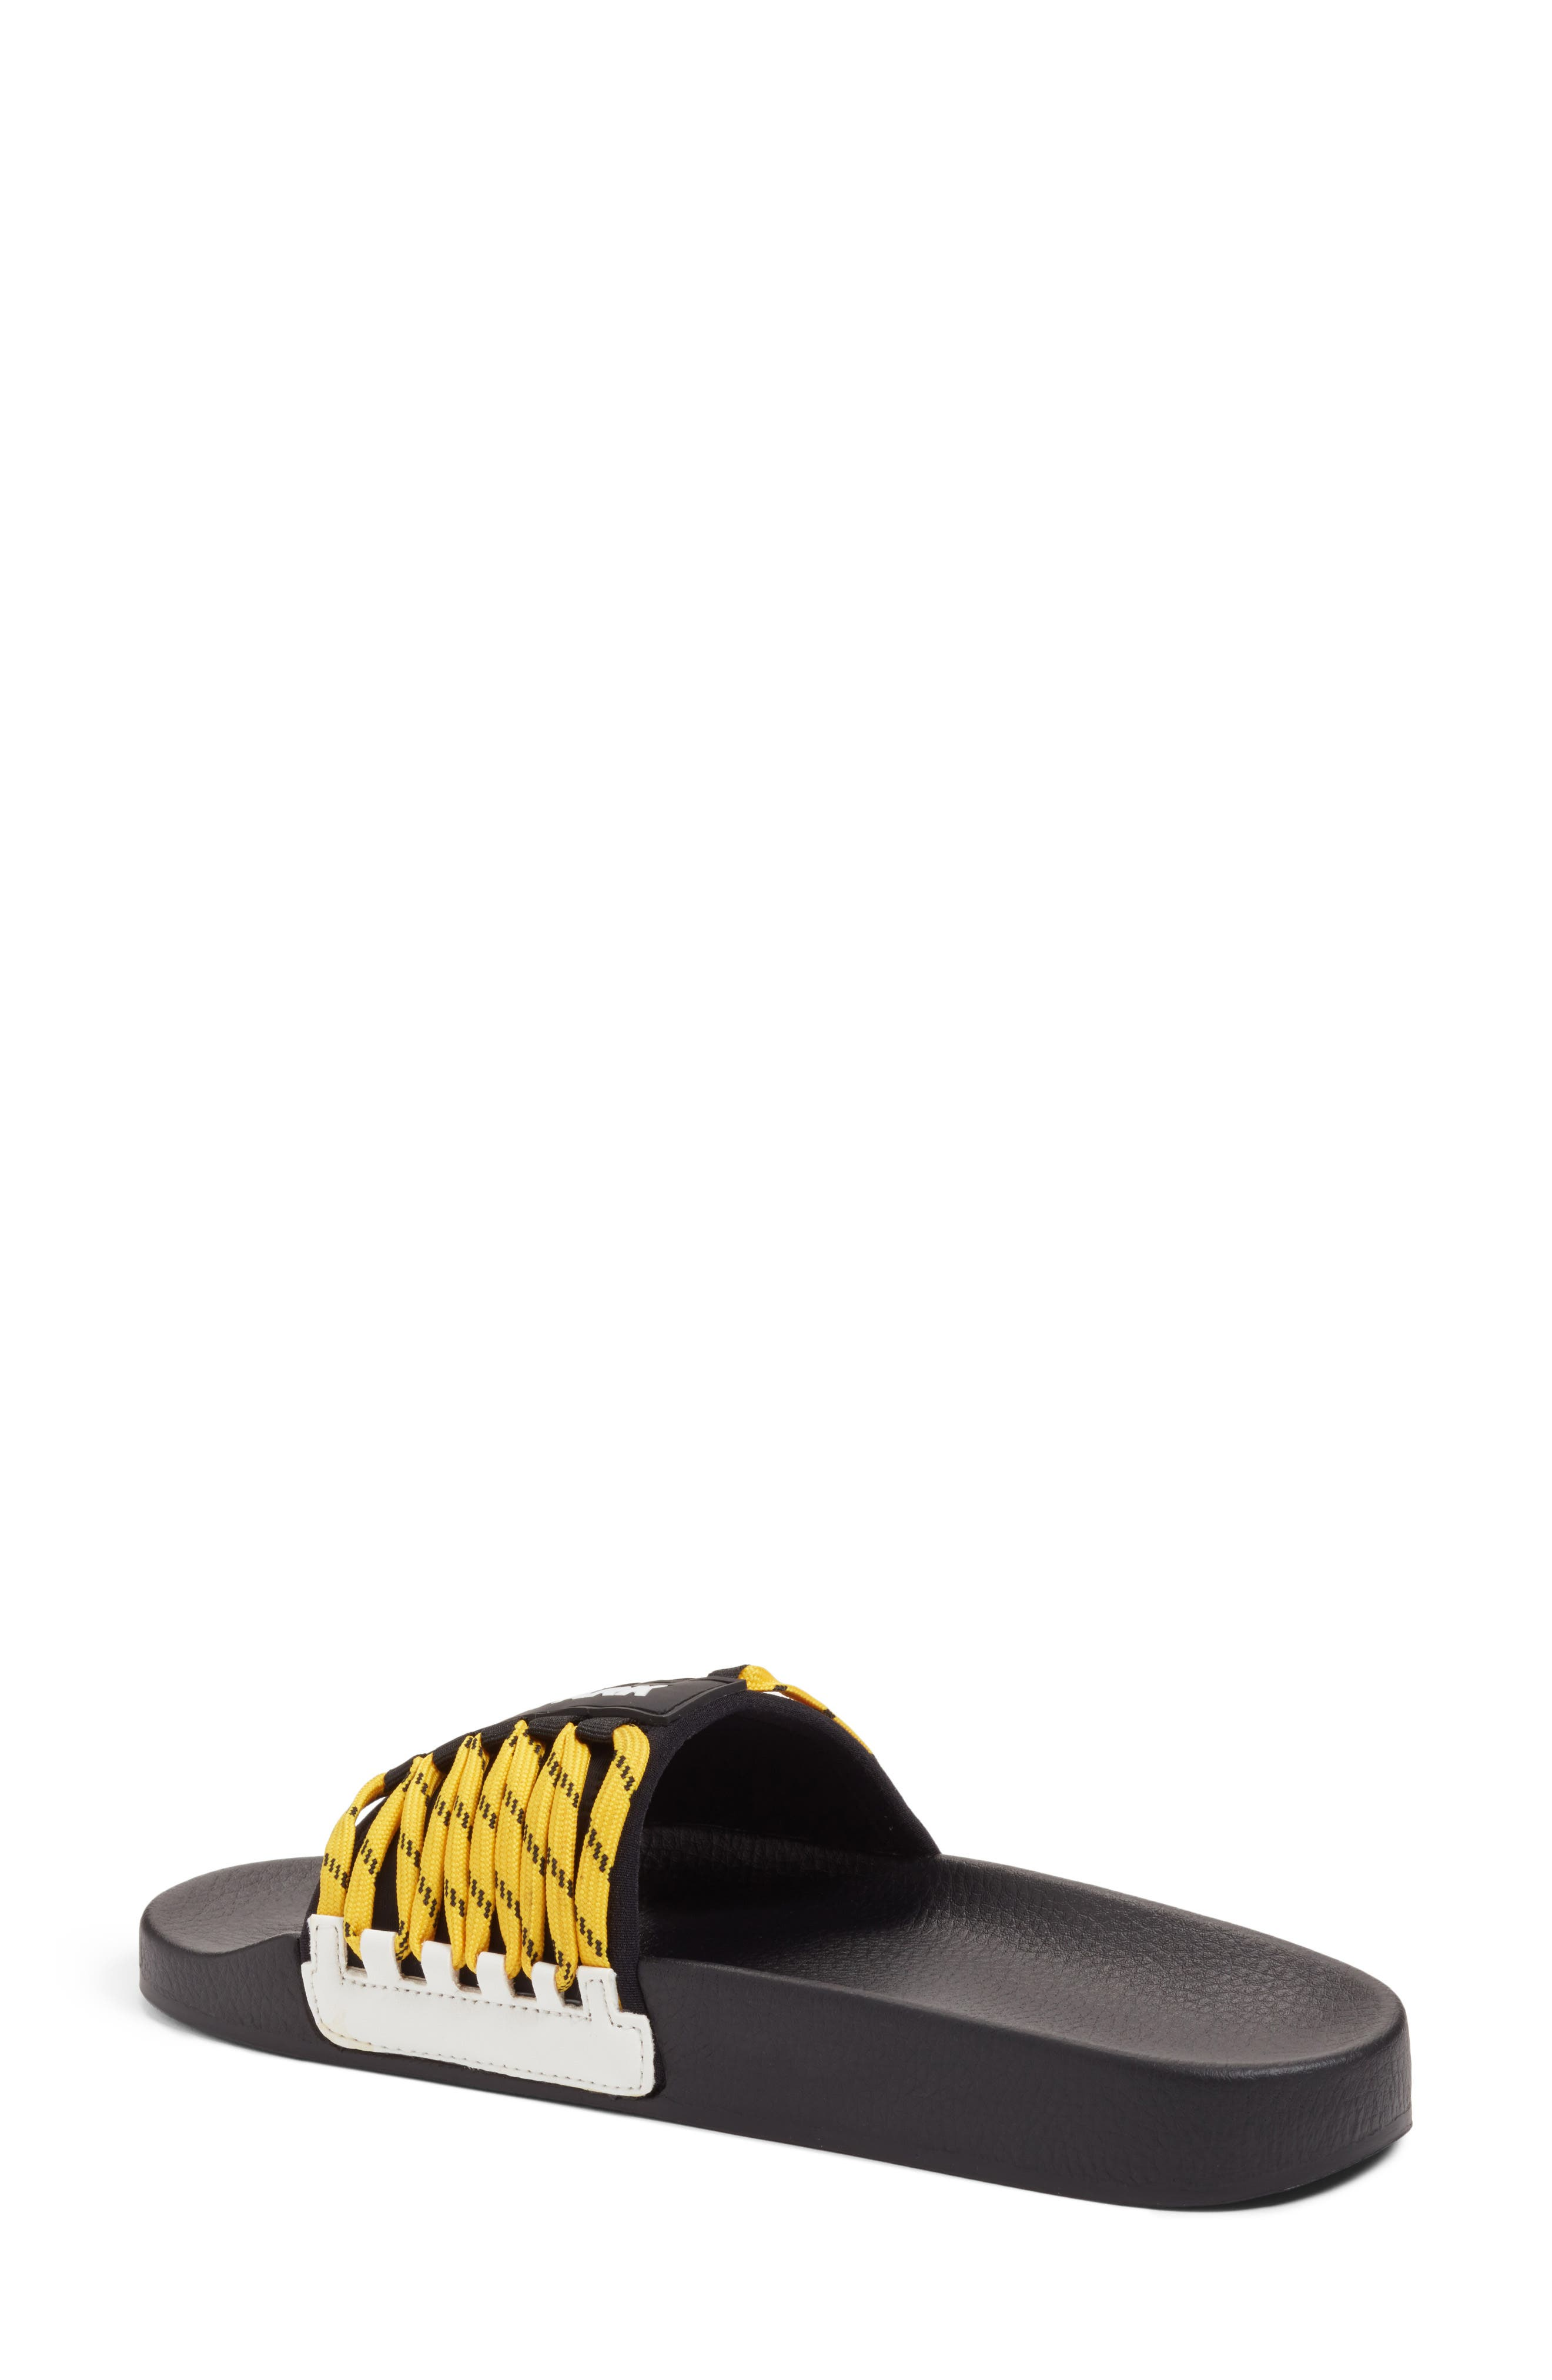 Lace-Up Slide Sandal,                             Alternate thumbnail 2, color,                             Black